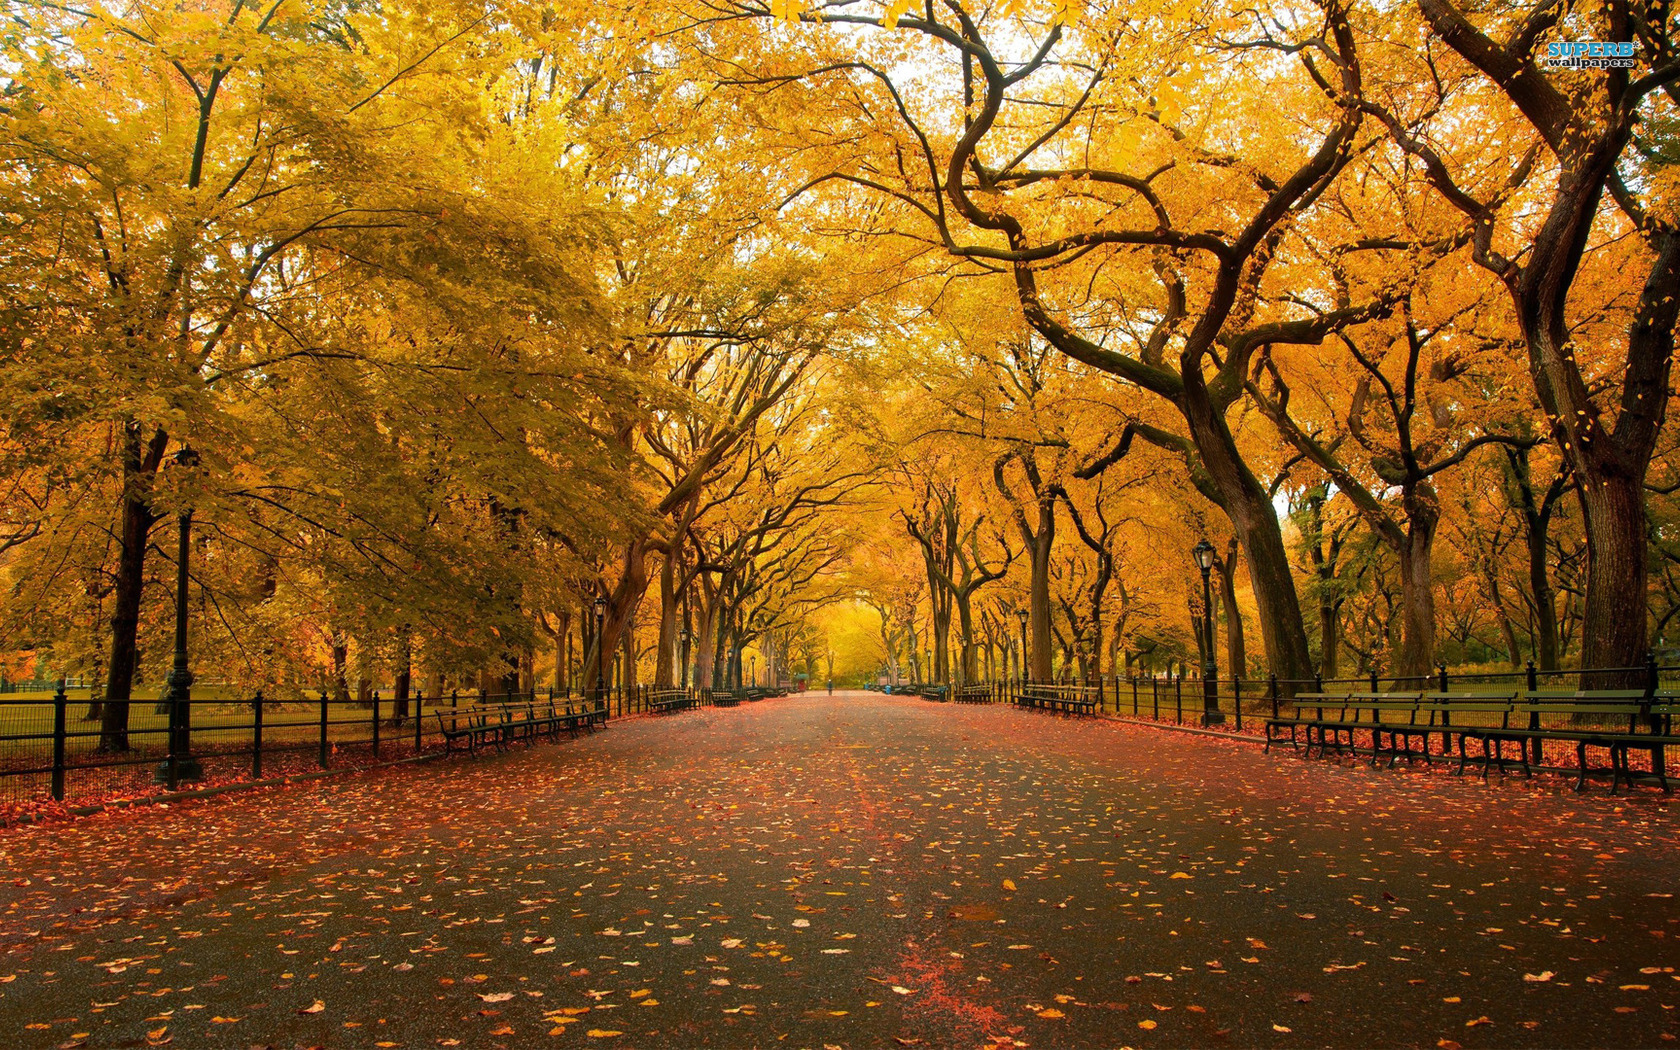 Fall Scenery Wallpapers Free Park Wallpaper 1680x1050 68779